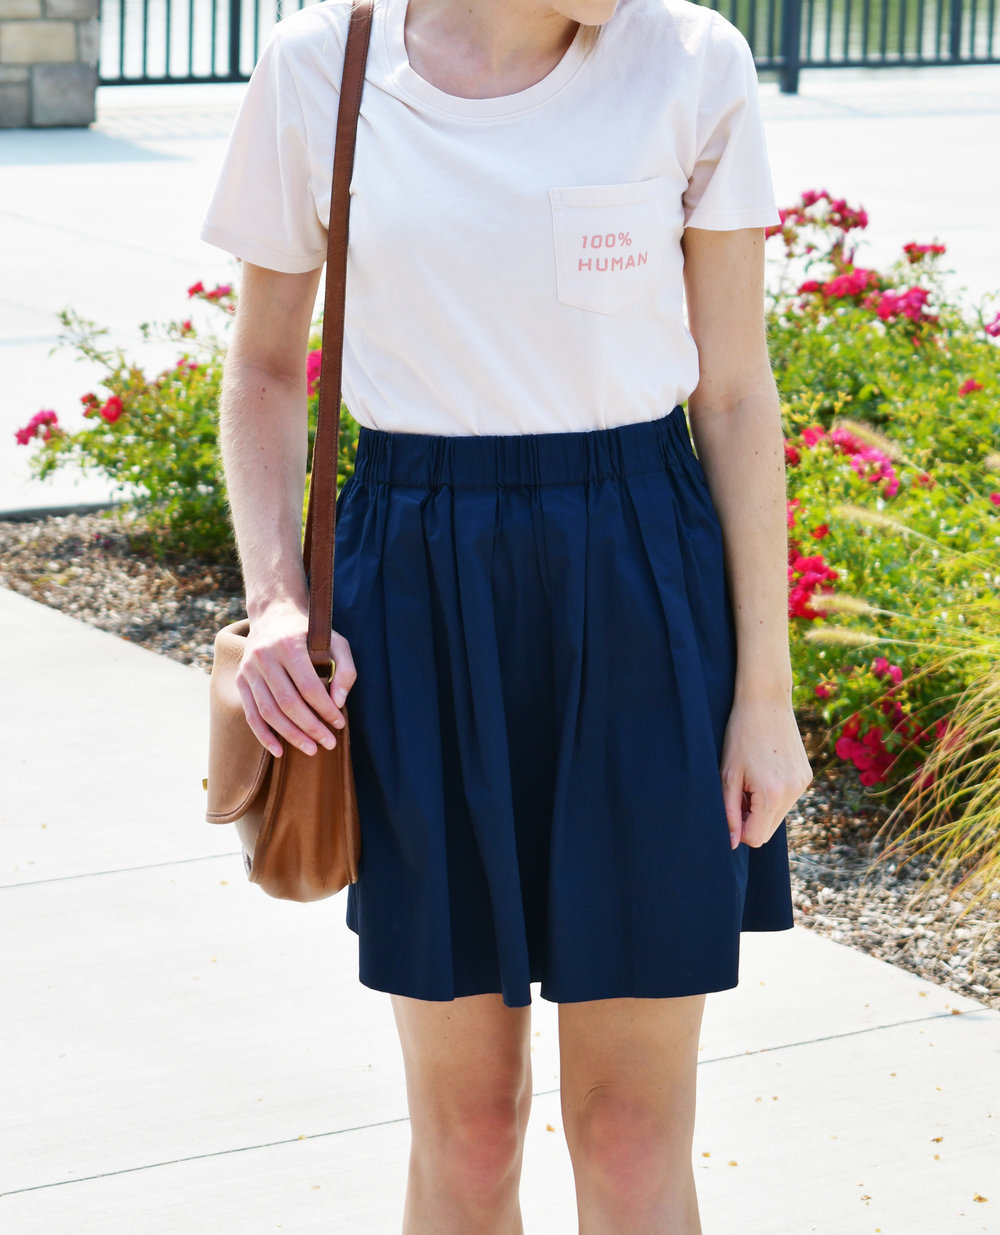 Human woman tee outfit with navy cotton-poplin skirt — Cotton Cashmere Cat Hair